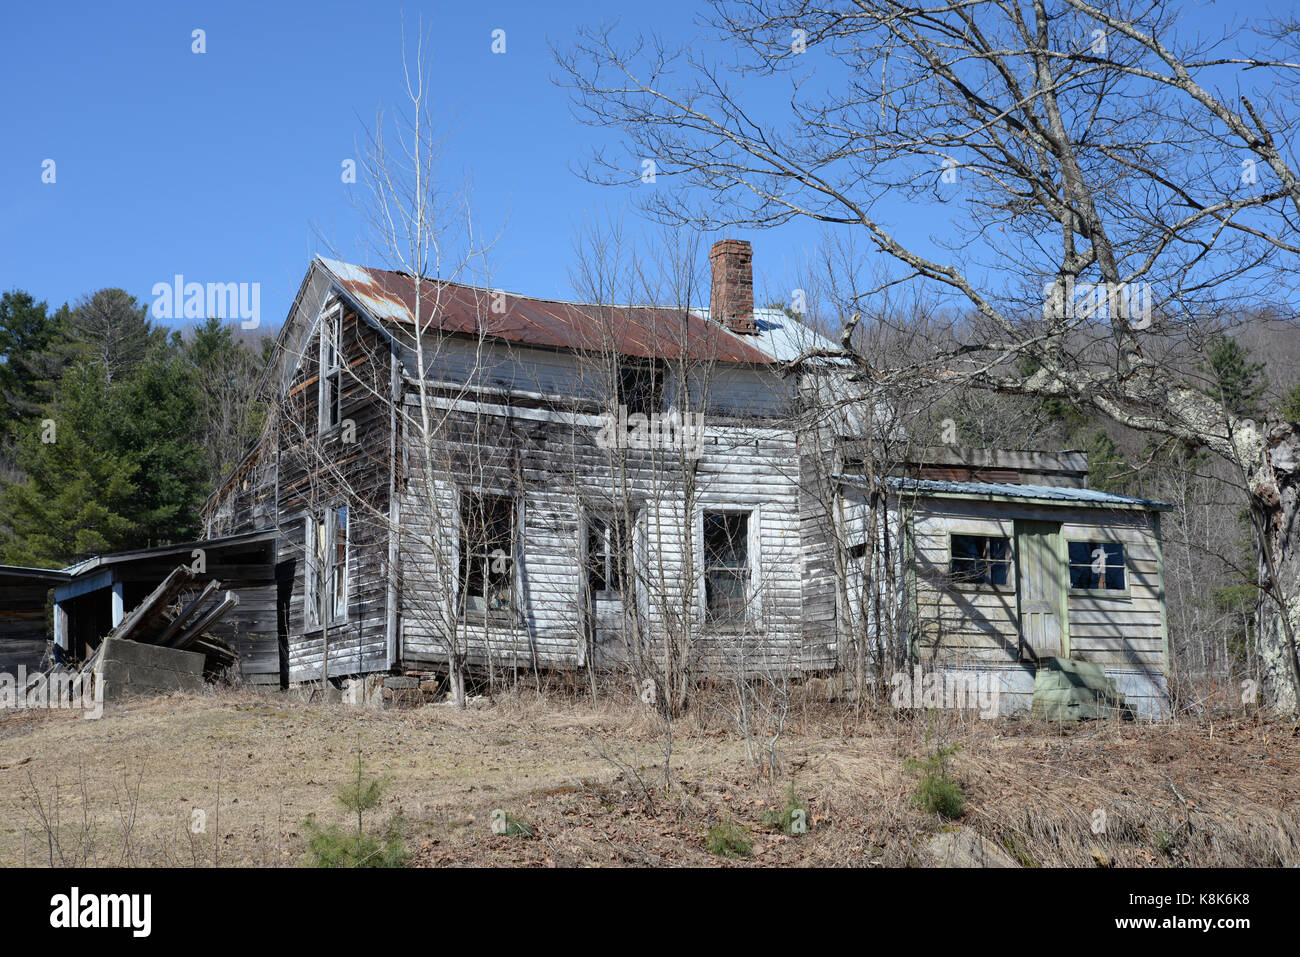 Old abandoned run down falling down house in the country. - Stock Image